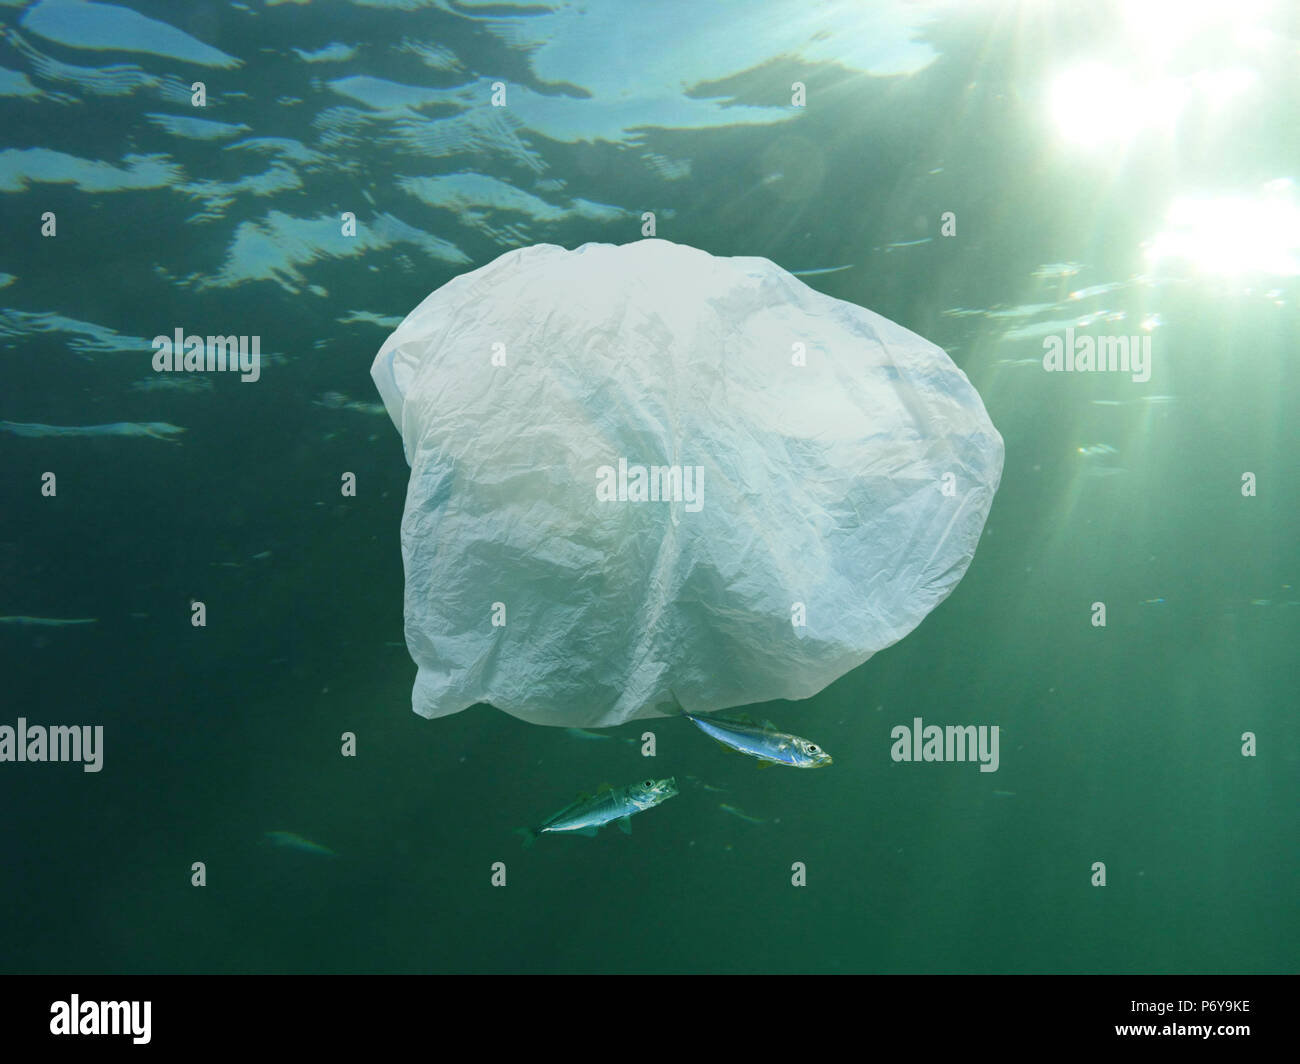 Plastic bag accompanied by two young horse mackerel. - Stock Image